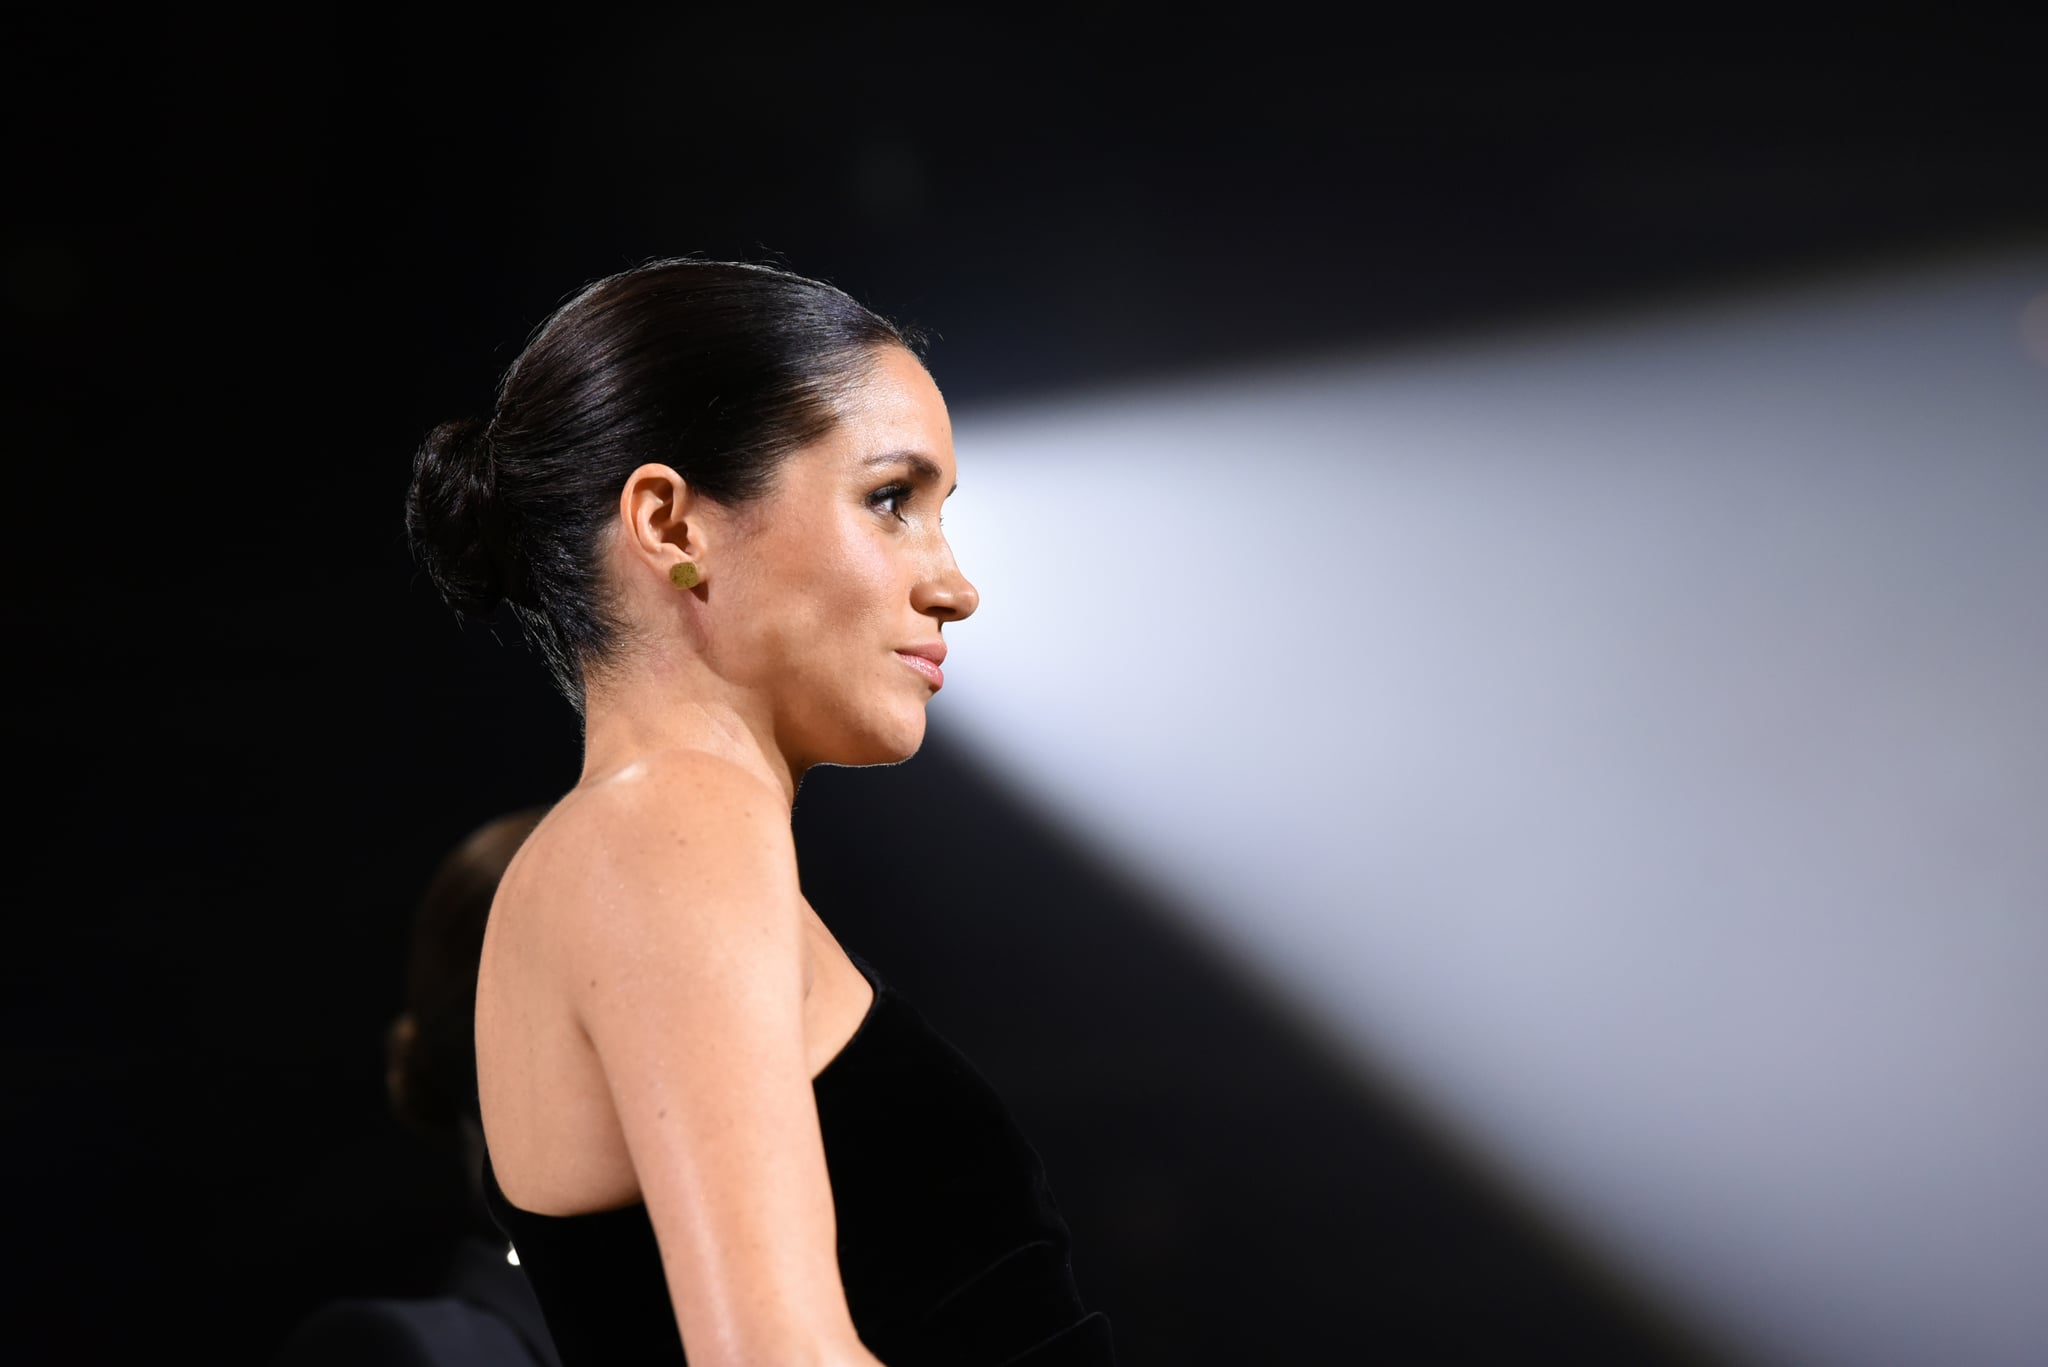 LONDON, ENGLAND - DECEMBER 10:  Meghan, Duchess of Sussex on stage during The Fashion Awards 2018 In Partnership With Swarovski at Royal Albert Hall on December 10, 2018 in London, England.  (Photo by Joe Maher/BFC/Getty Images)